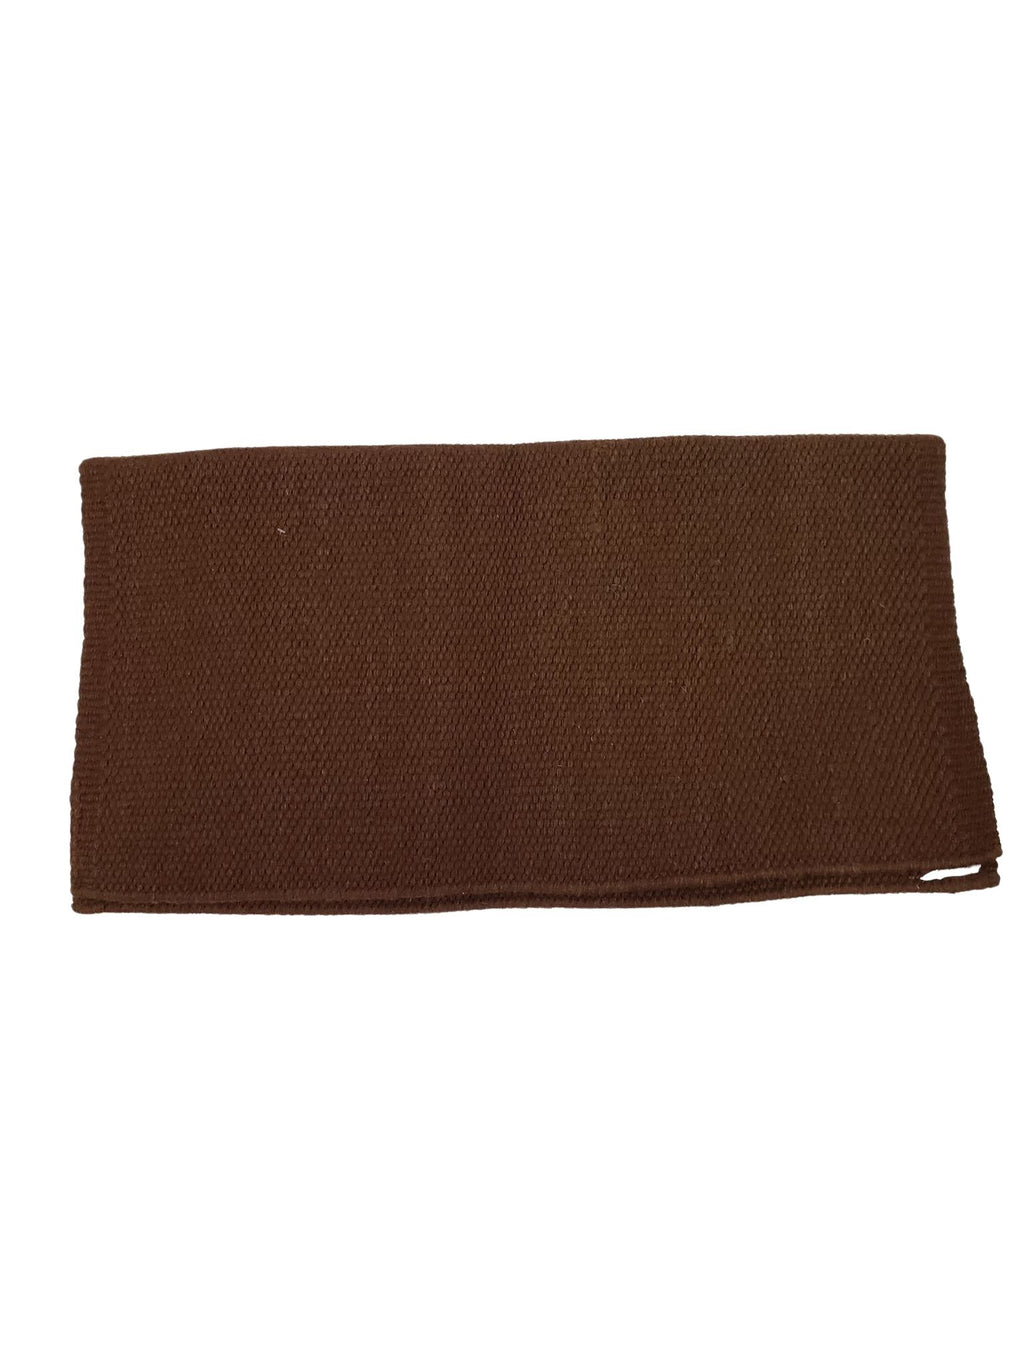 Chocolate Saddle Blanket